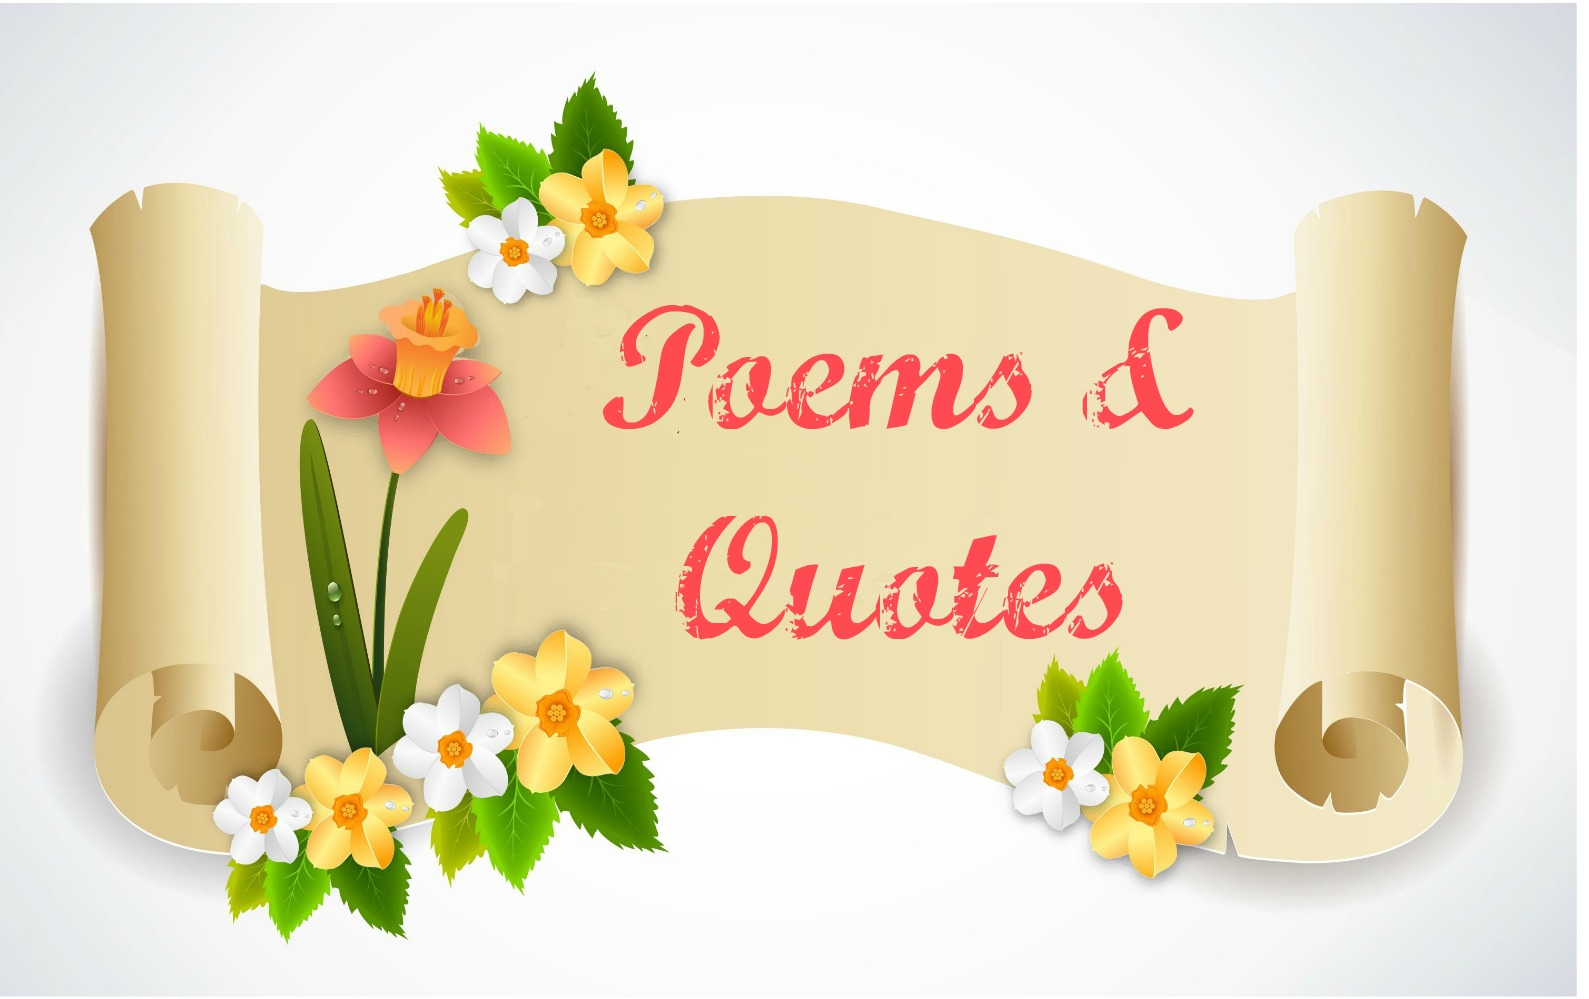 Daycare Quotes Daycare Poems And Quotes And More